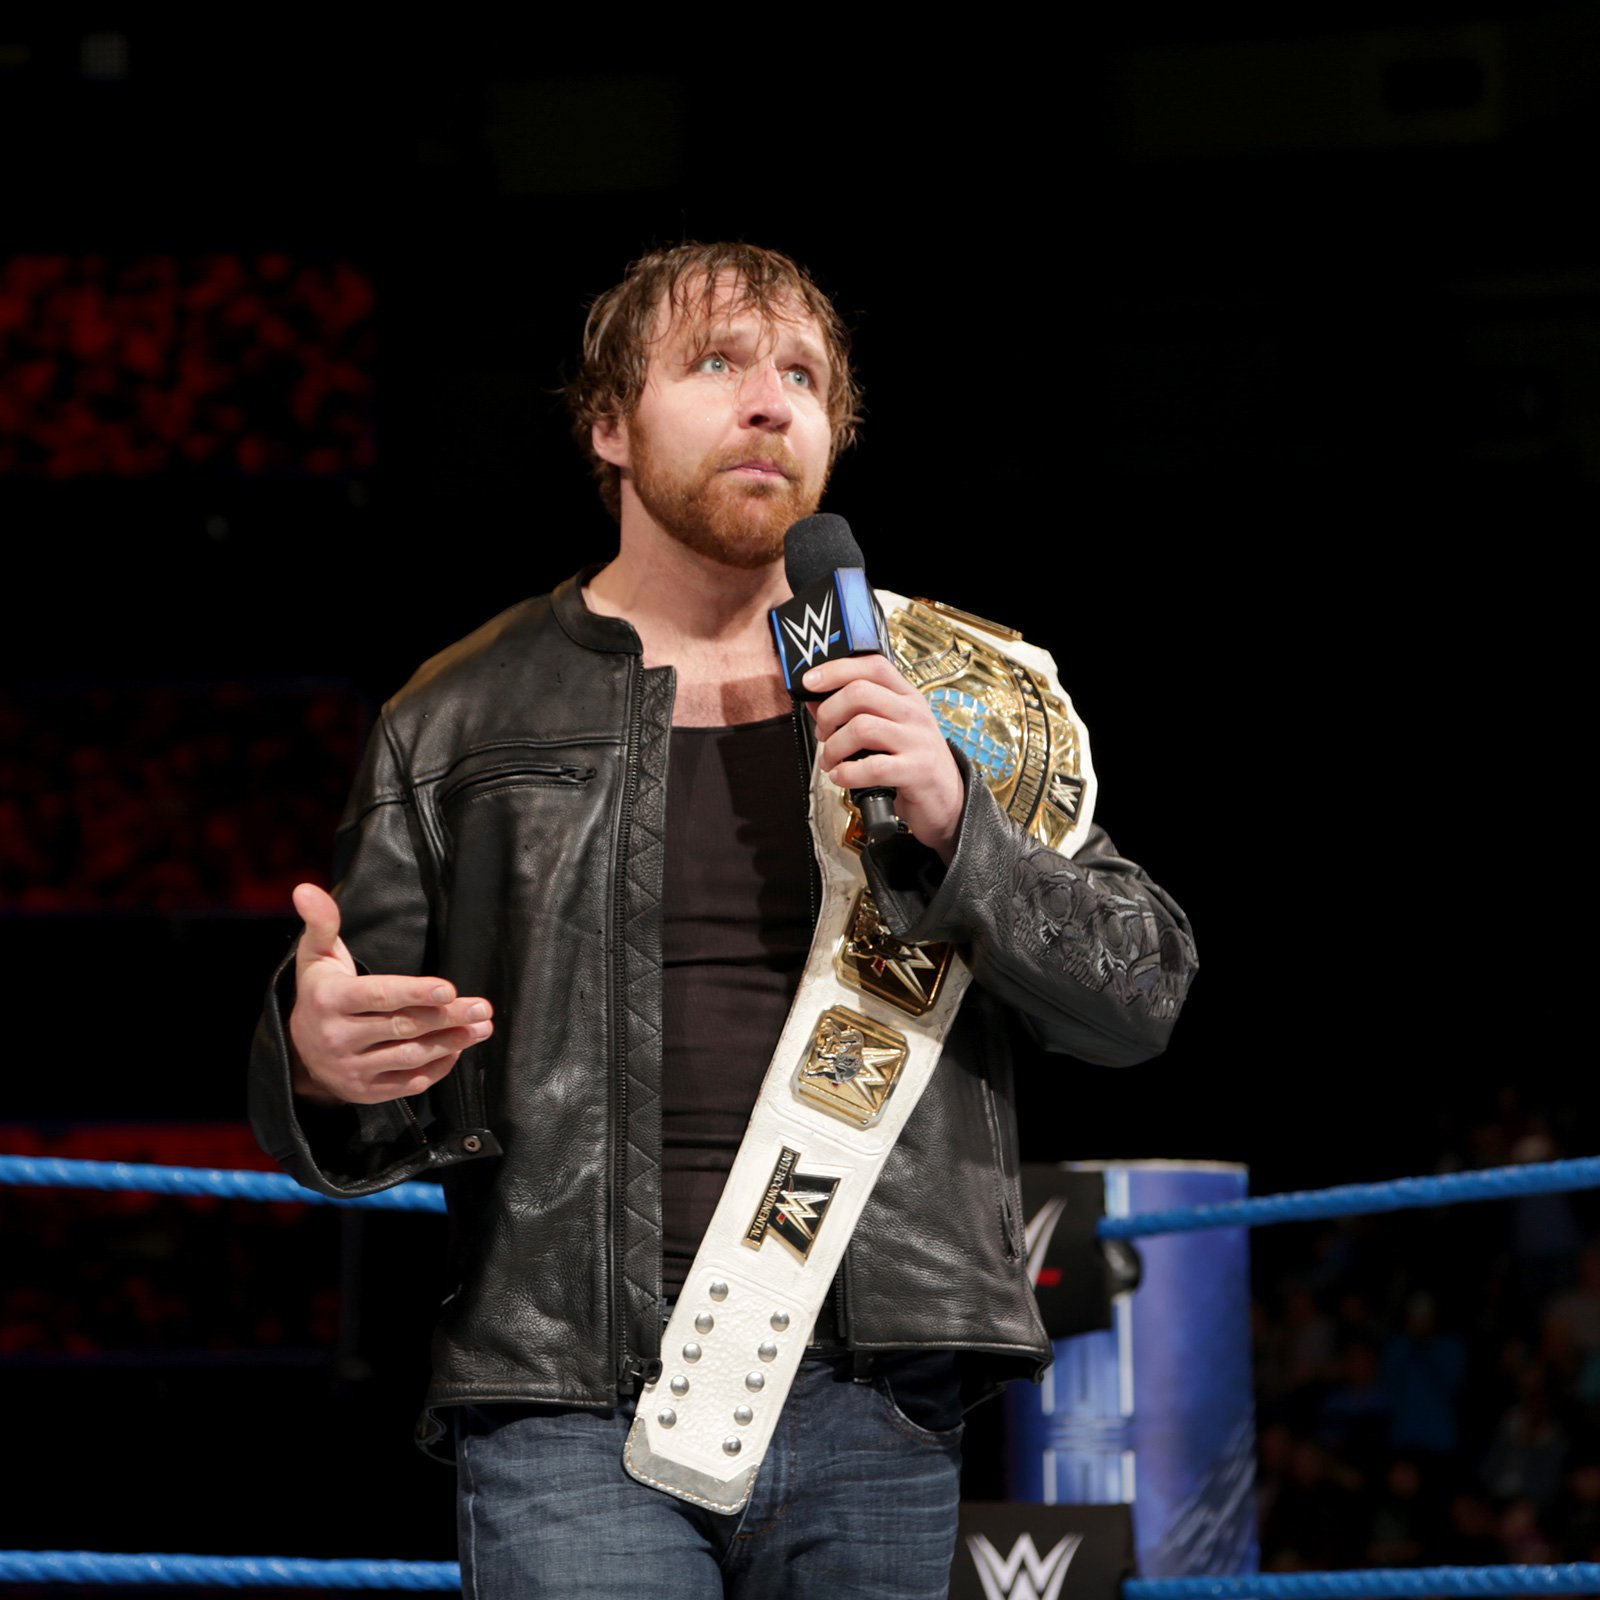 Ambrose is the first SmackDown LIVE Superstar to officially enter the Royal Rumble Match!